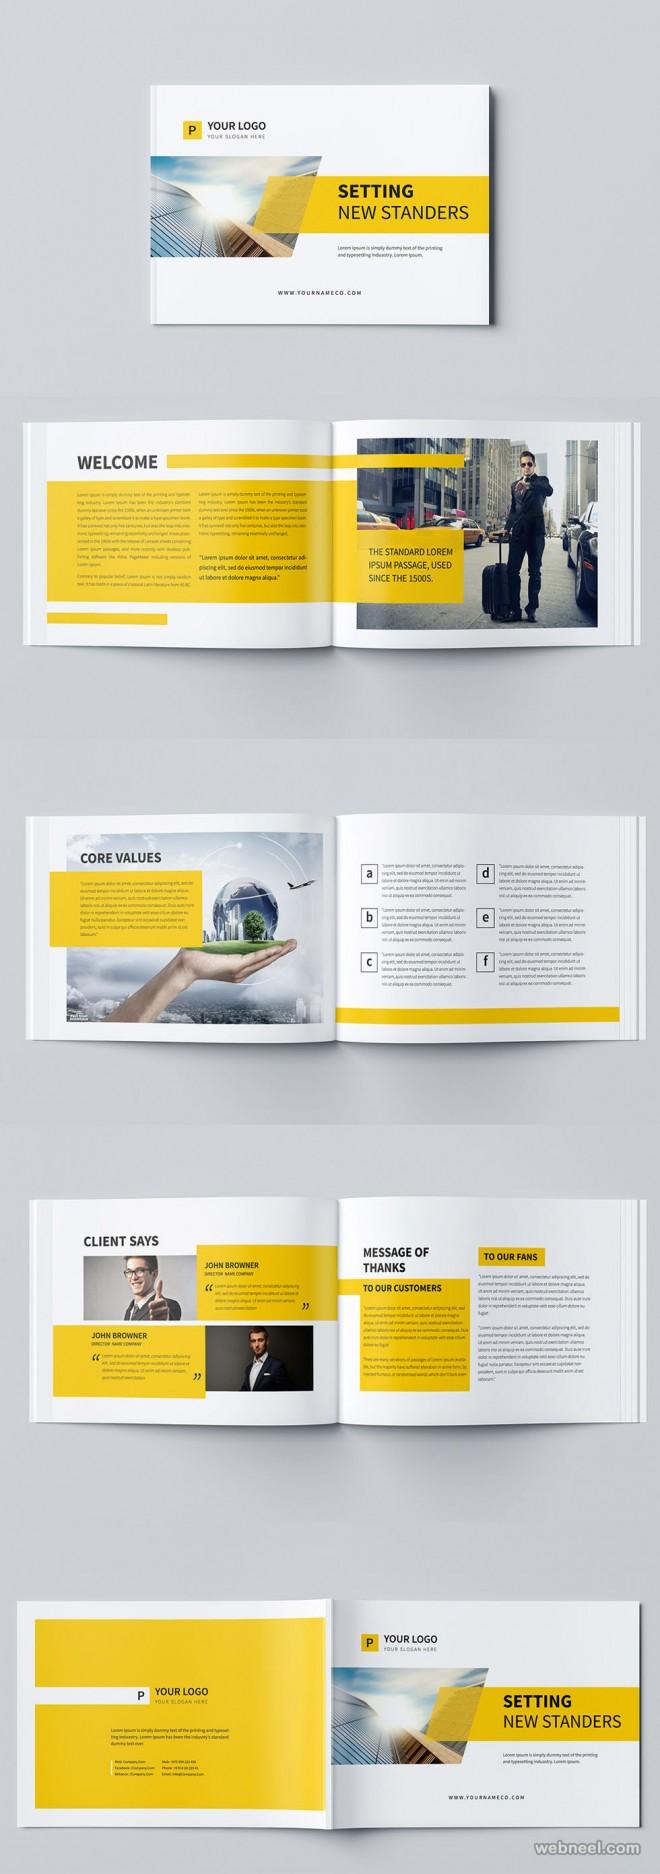 Brochure Design Ideas brochure design inspiration real estate architecture samples Brochure Design By Brynmorgan Brochure Design Brochure Design